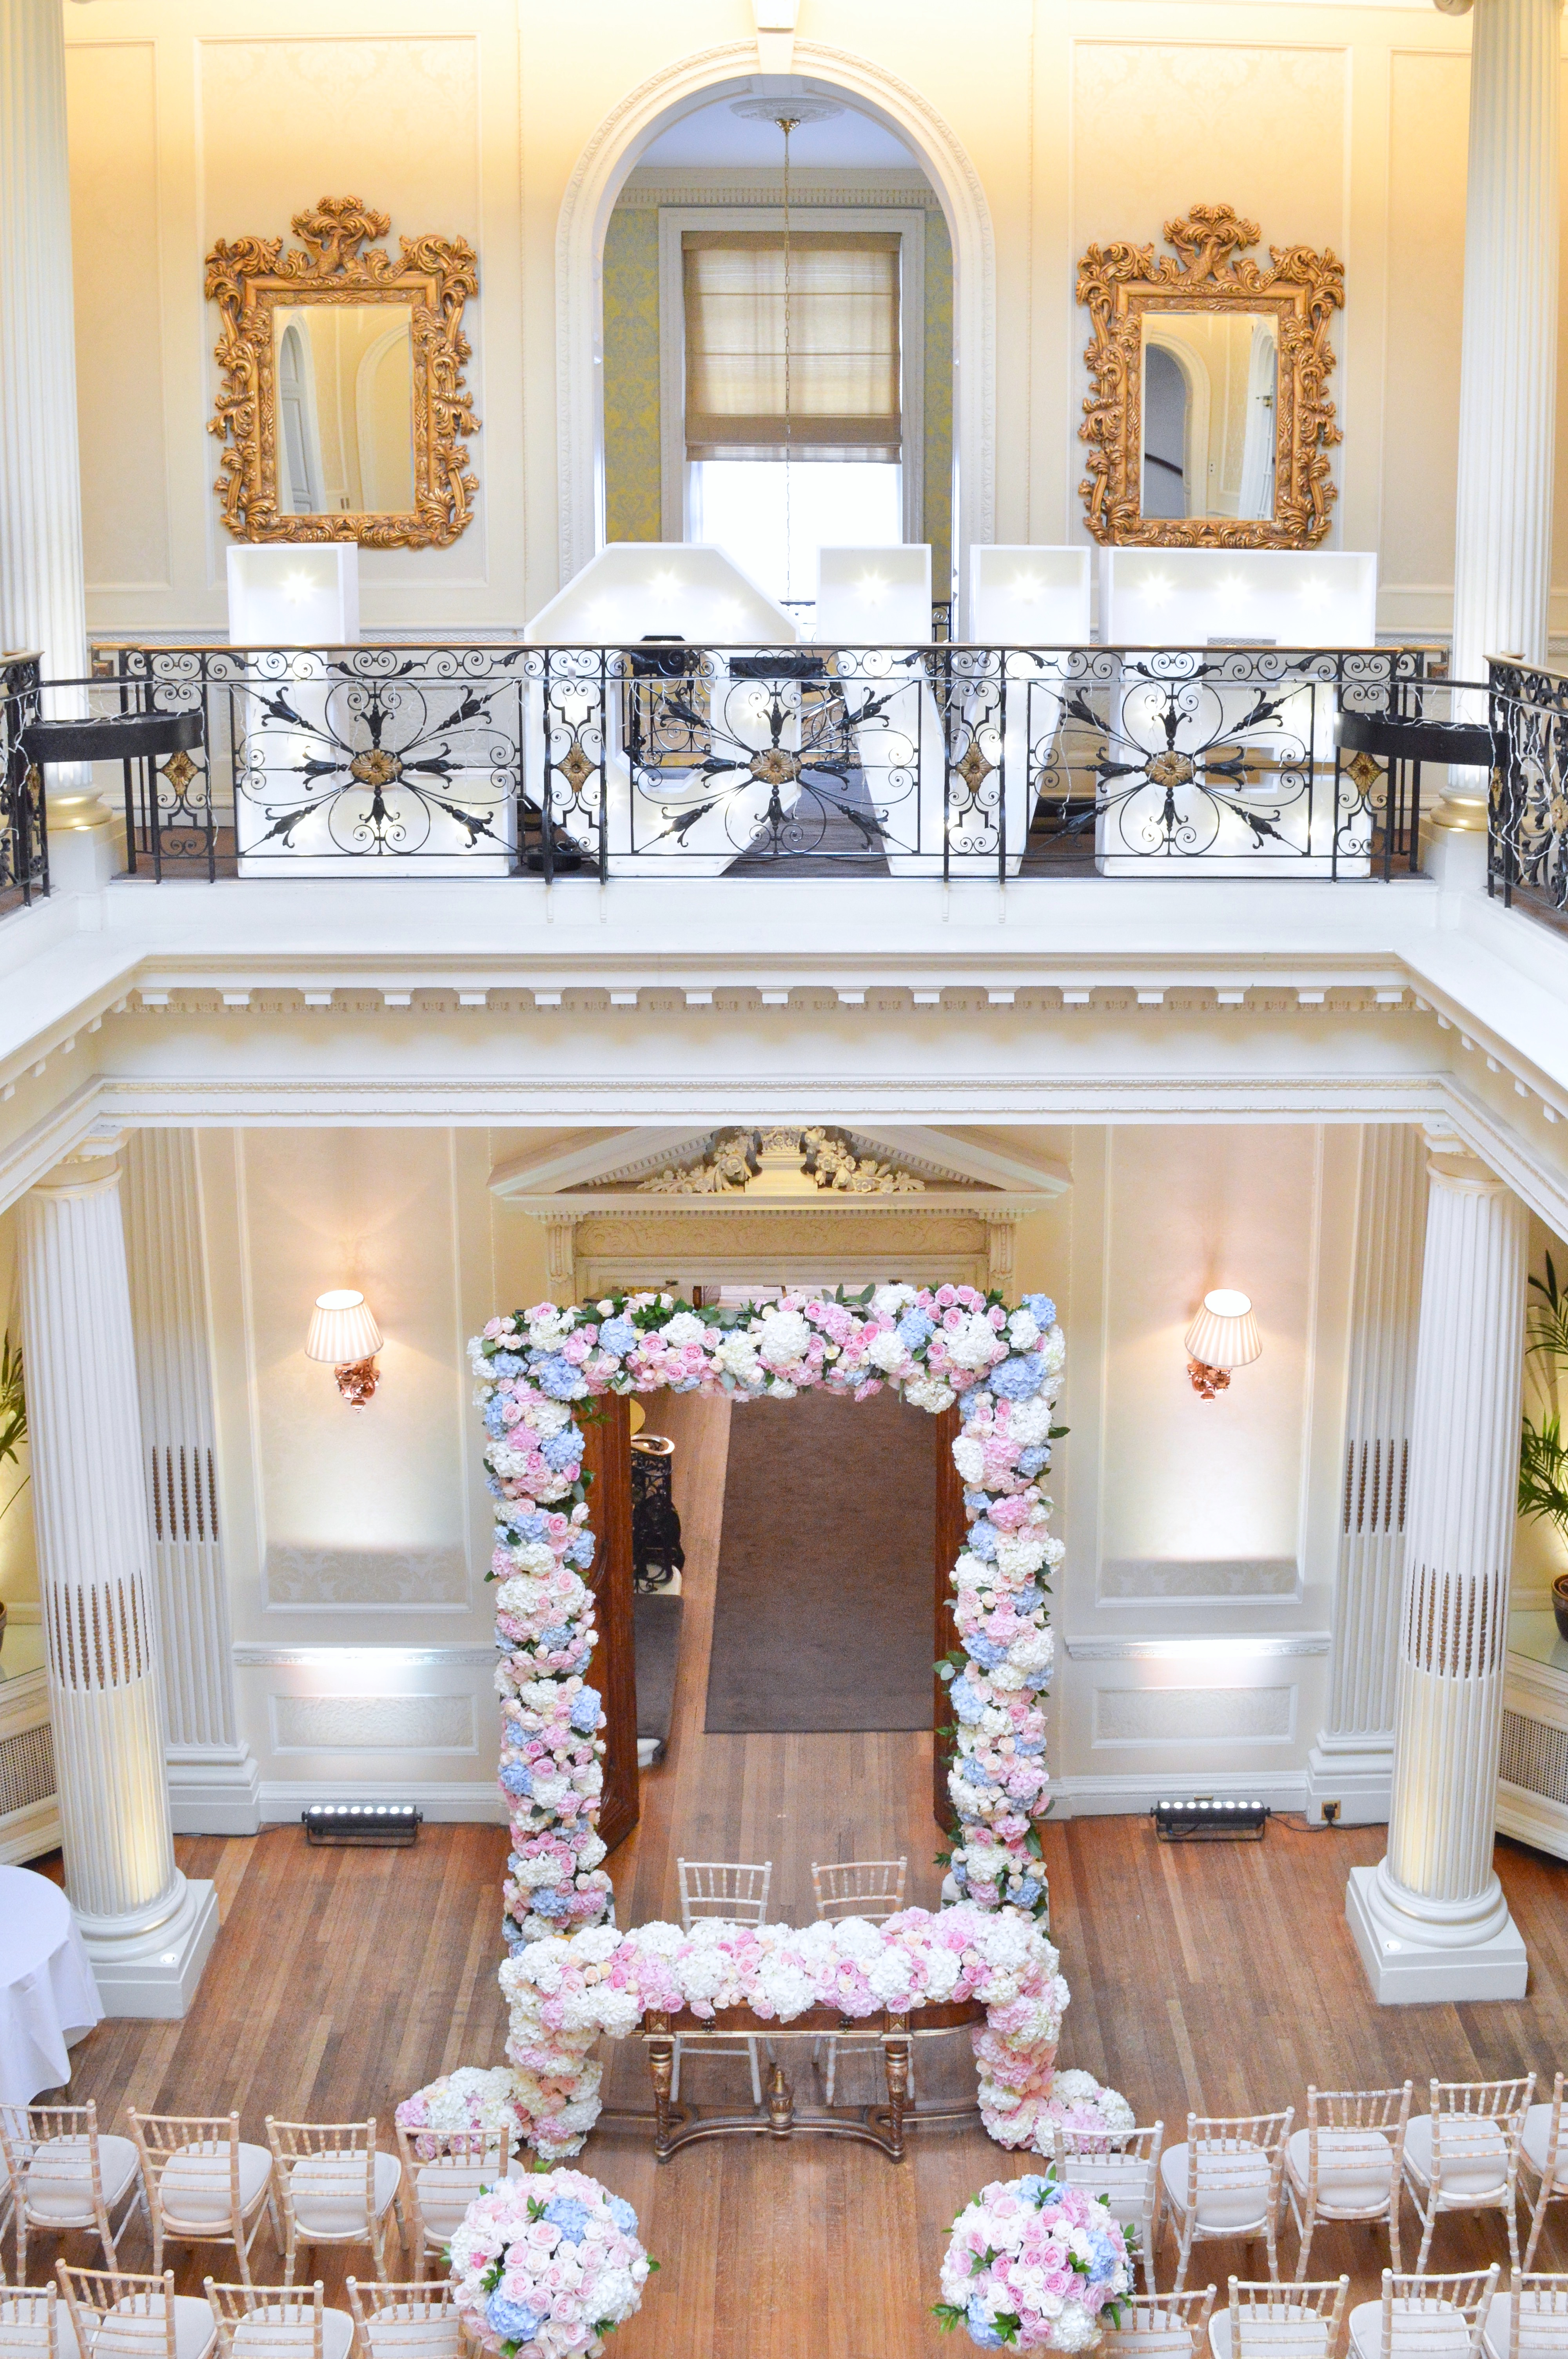 Dusty blue and pink wedding flowers arch registrar table head toptable floral garland wedding ceremony aisle floating candles Cherie Kelly cakes London Hedsor House (2)